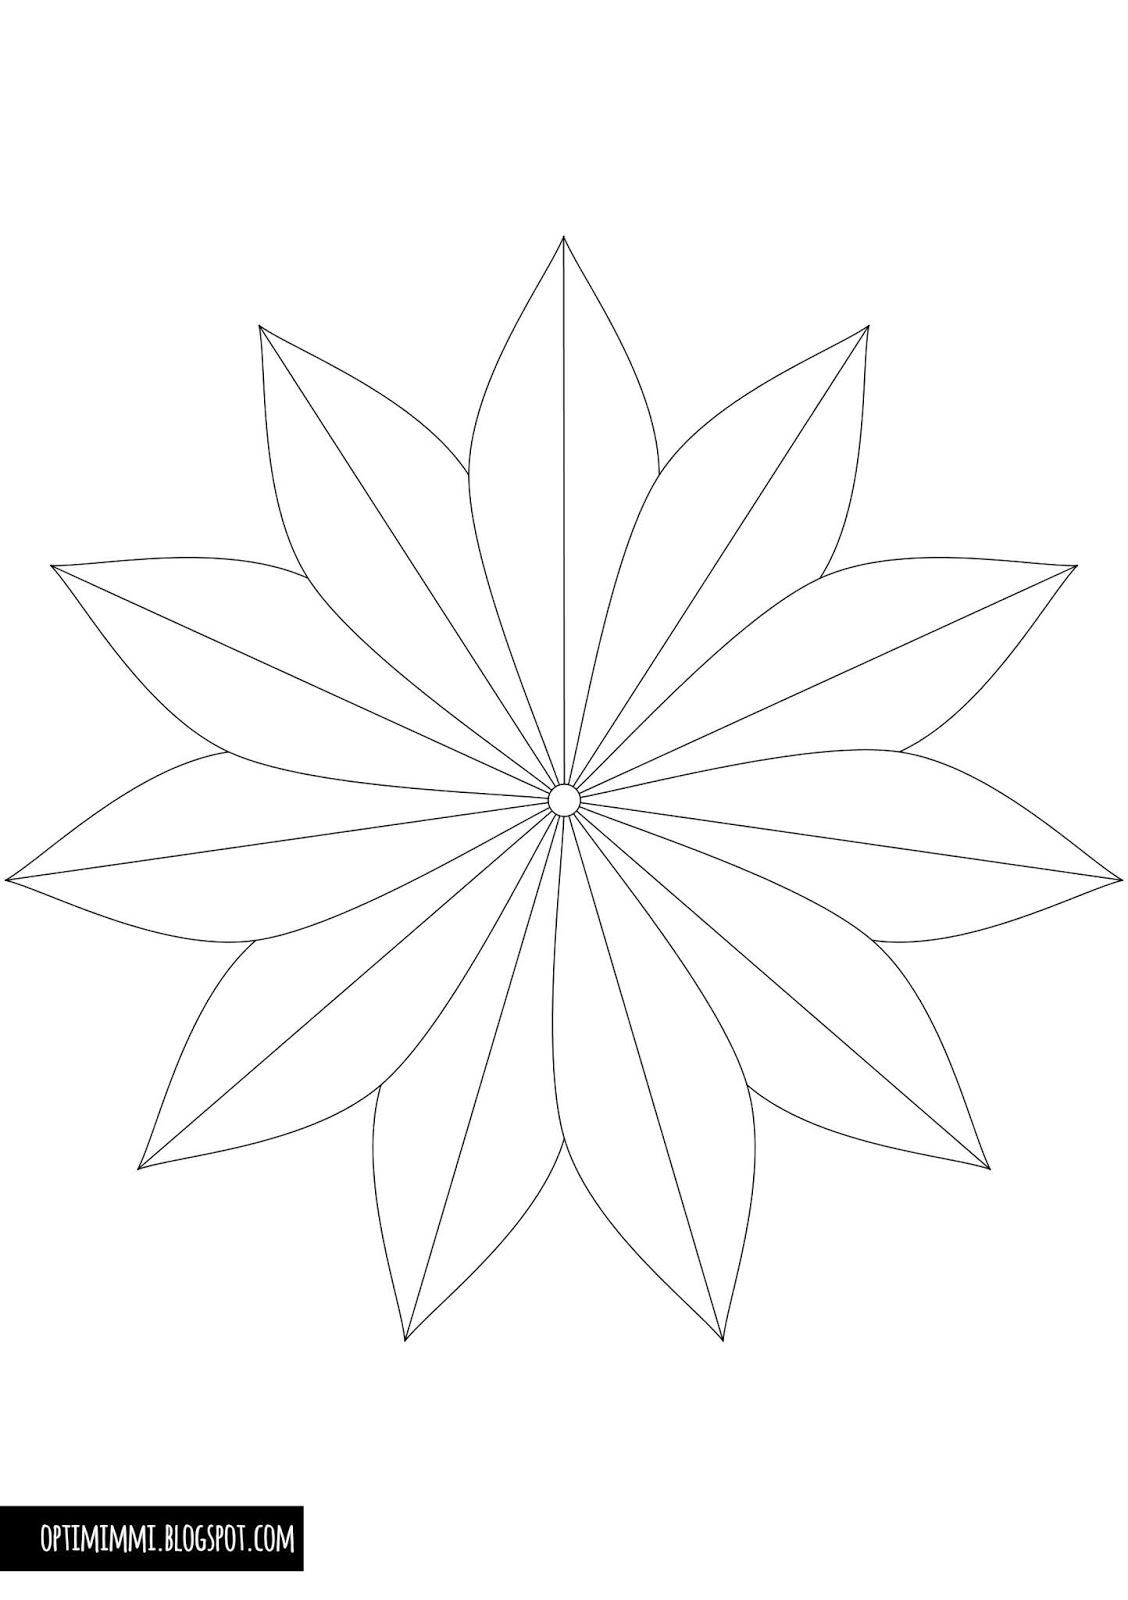 OPTIMIMMI: A pretty flower (a coloring page) / Nätti kukka